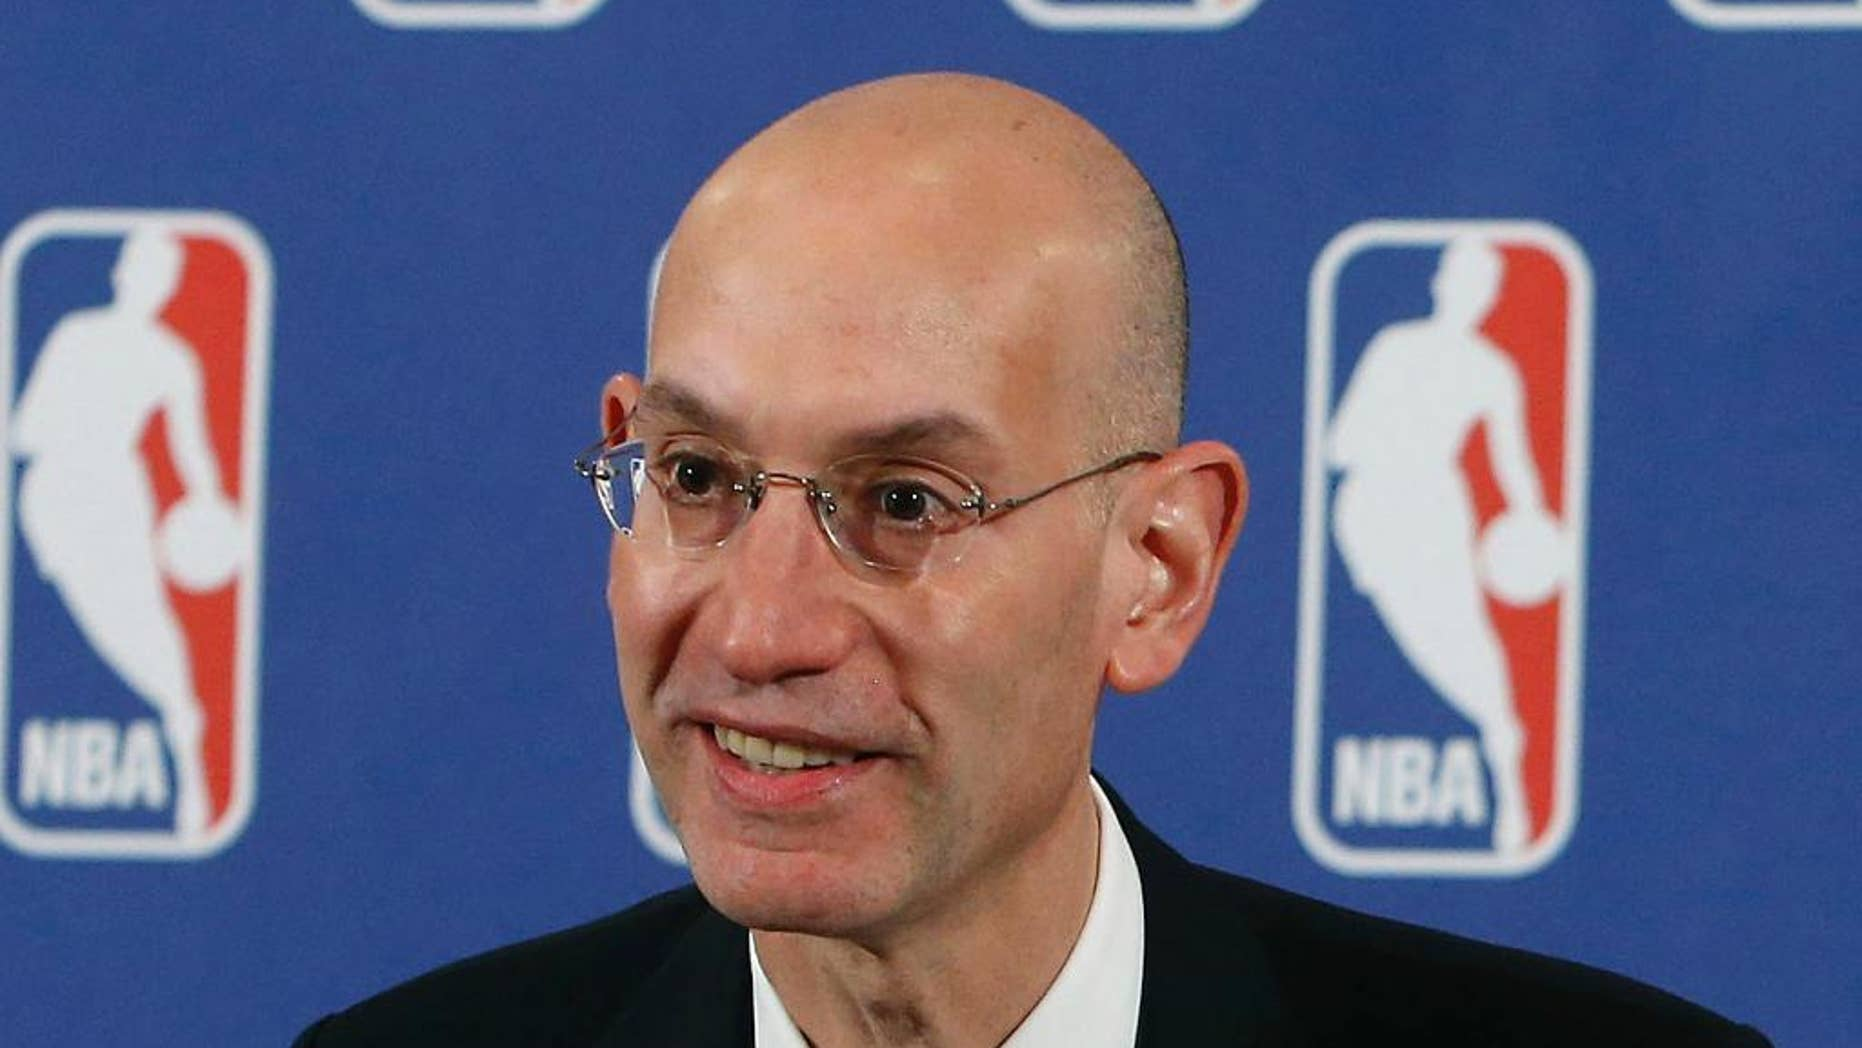 "FILE - In this May 21, 2013, file photo, Adam Silver speaks during a news conference before the NBA basketball draft lottery in New York. The NBA has suspended Charlotte Hornets forward Jeffery Taylor for 24 games without pay after he pleaded guilty last month to misdemeanor domestic violence assault and malicious destruction of hotel property. ""This suspension is necessary to protect the interests of the NBA and the public's confidence in it,"" NBA Commissioner Silver said in a release Wednesday, Nov. 19, 2014. (AP Photo/Jason DeCrow, File)"